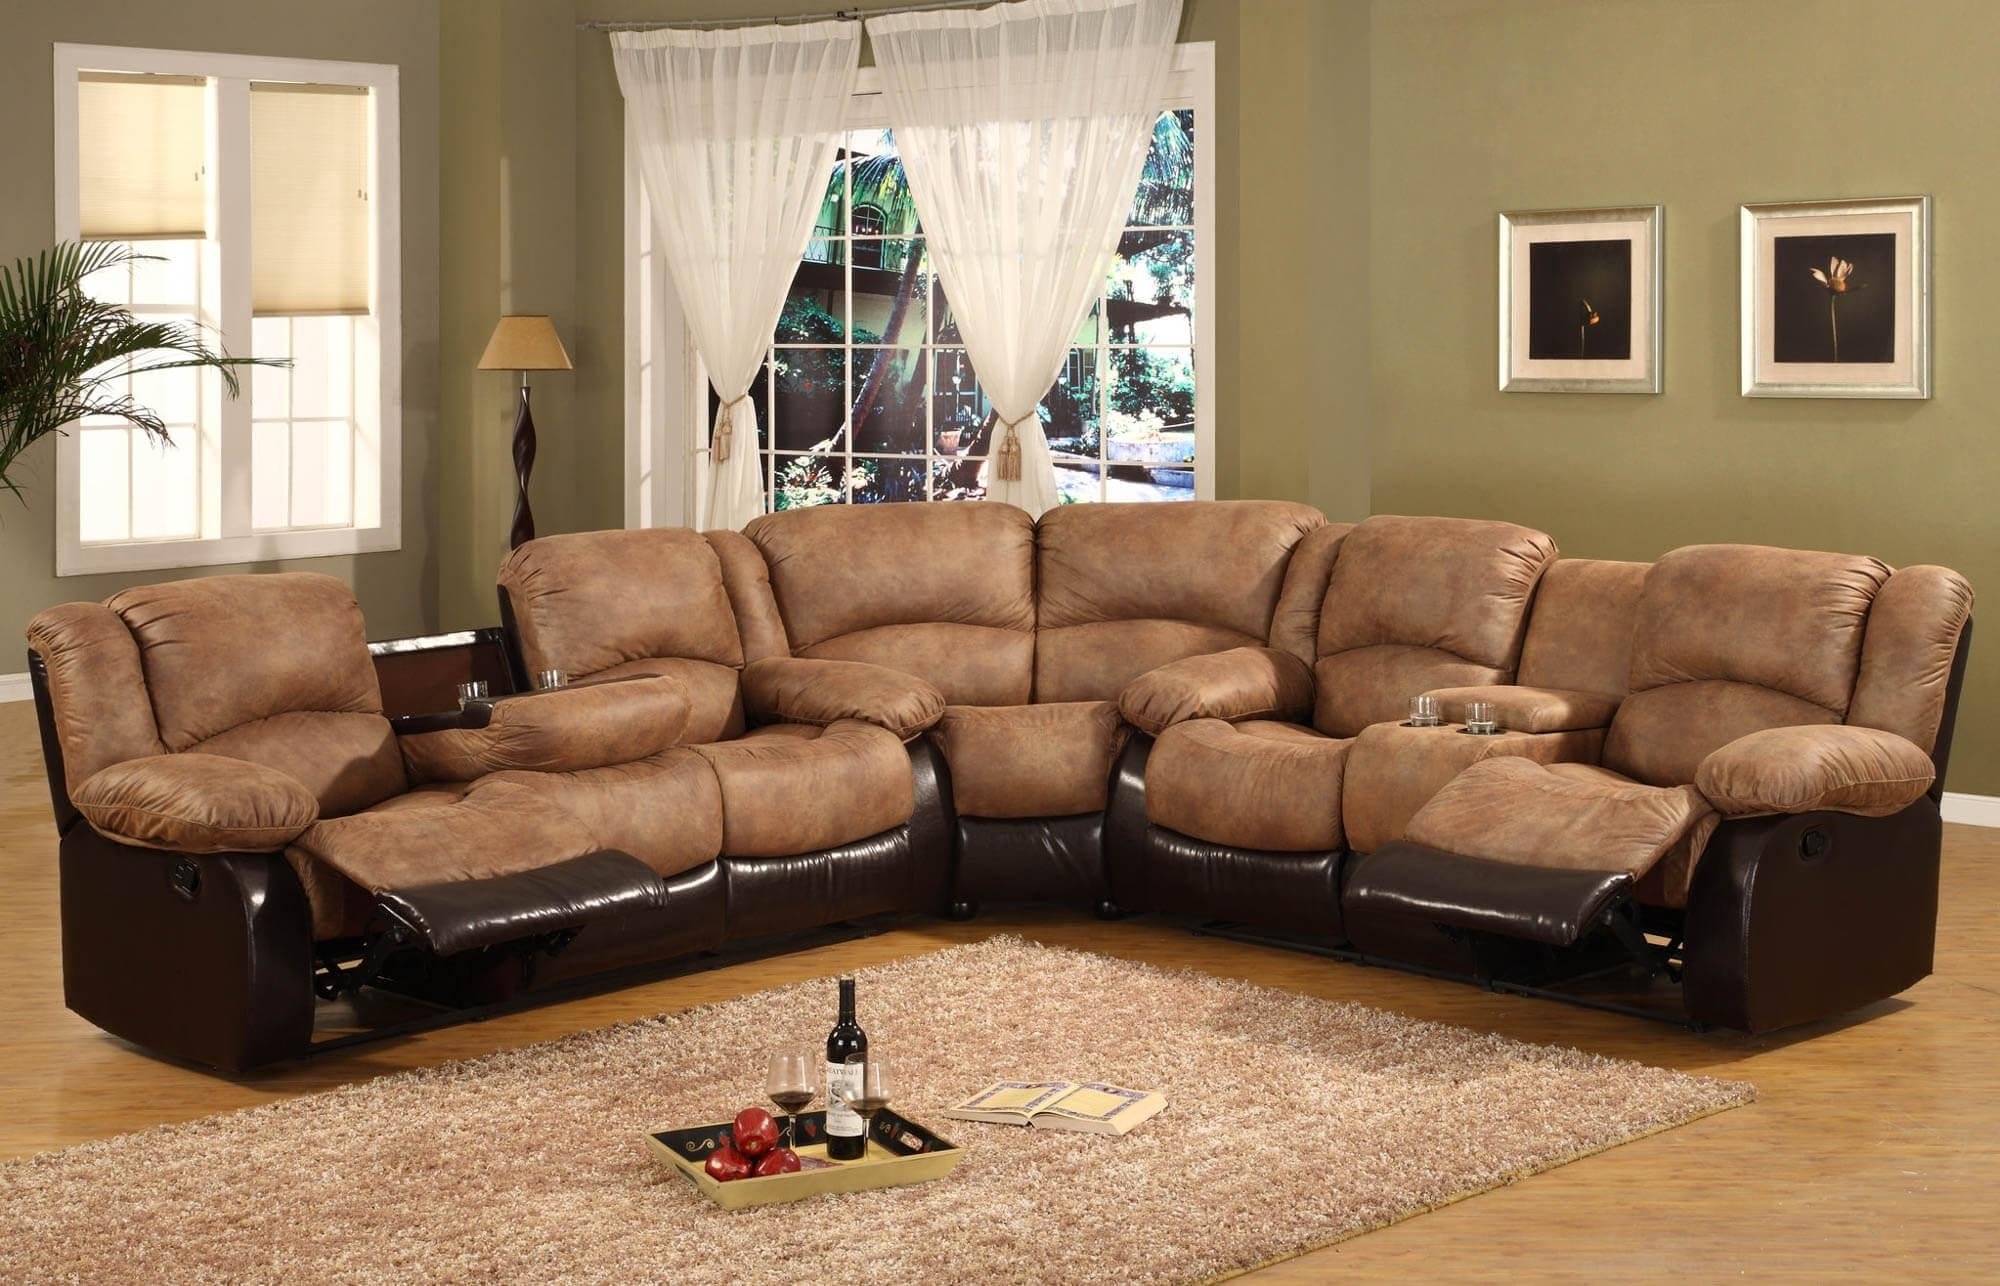 Sectional Sofa Craigslist | Sofa Gallery | Kengire Within Craigslist Sectional (View 4 of 15)